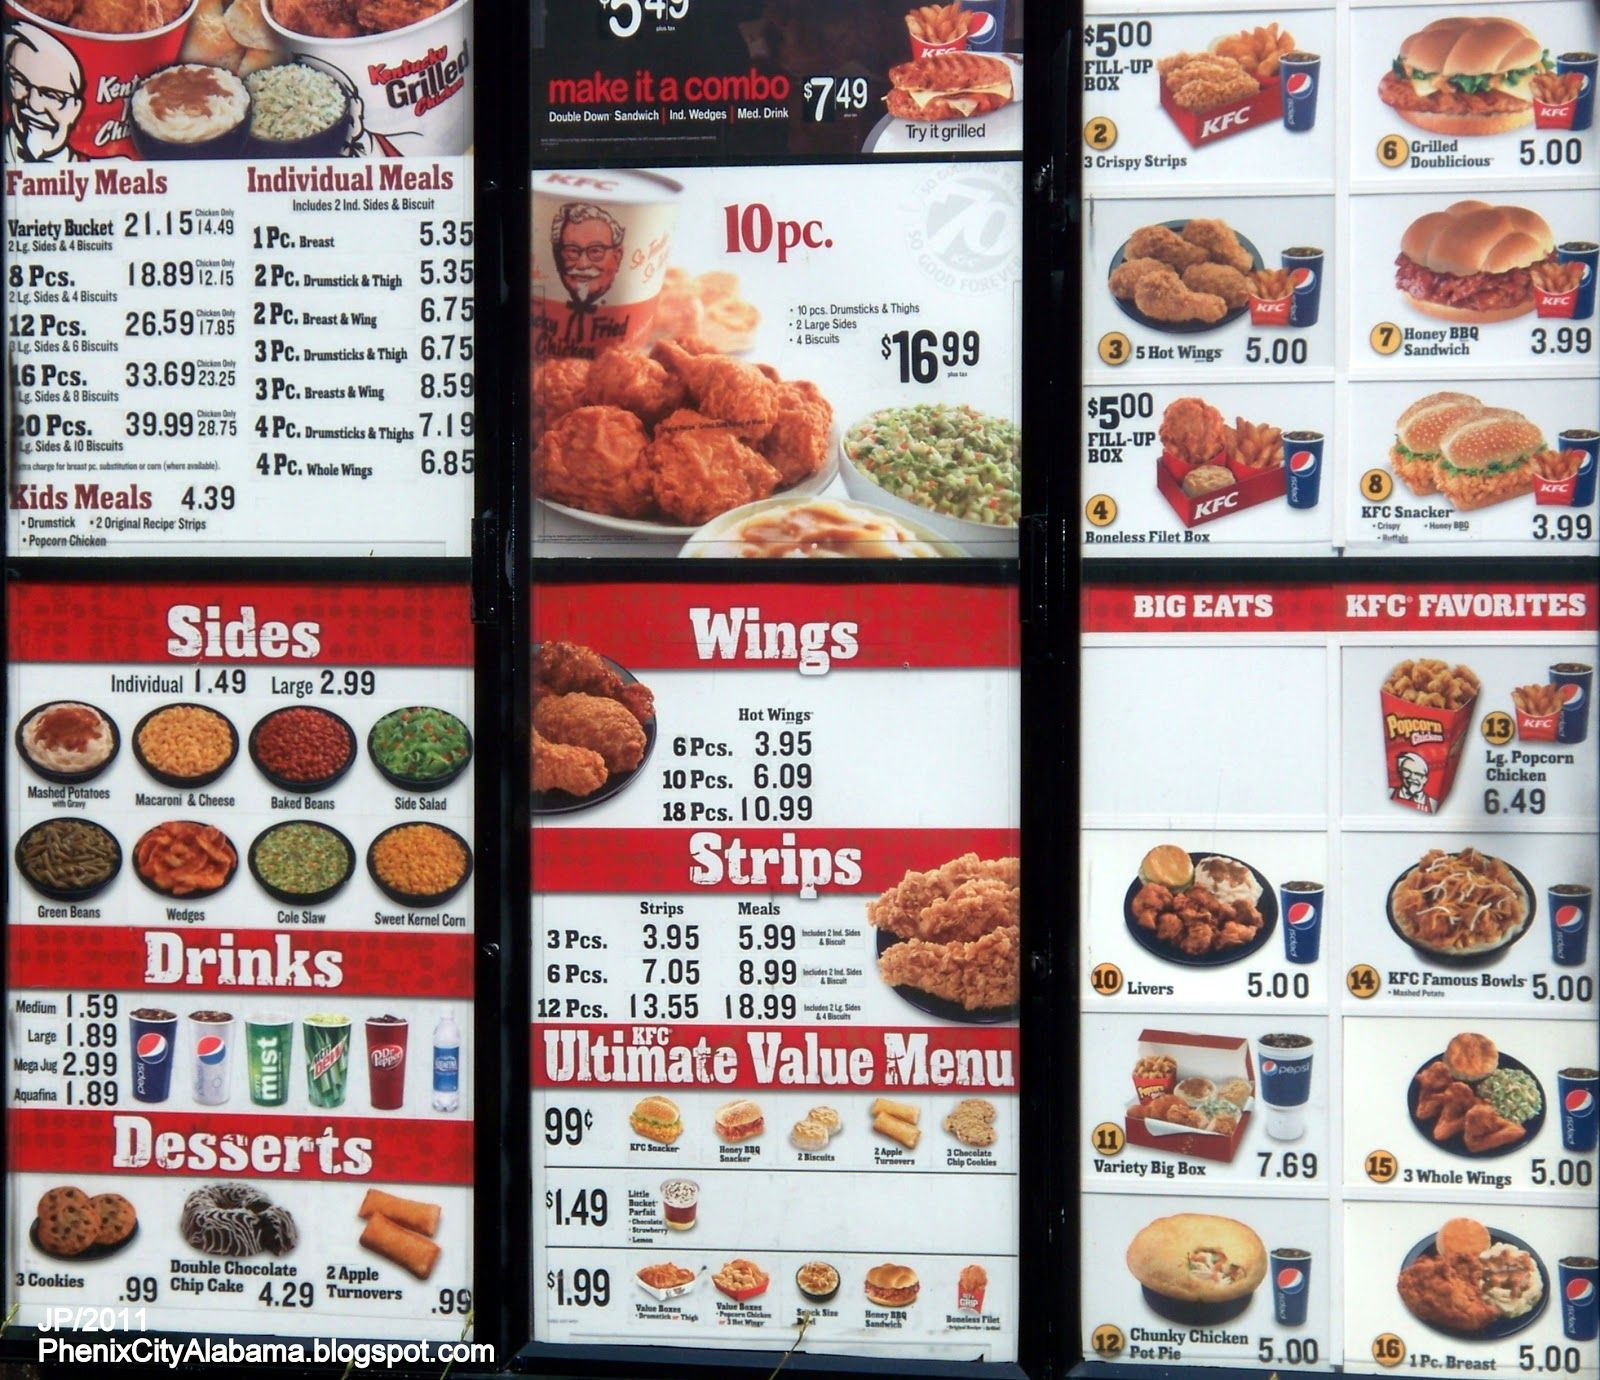 Turkey Prices For Thanksgiving 2019  KFC Menu Prices 2015 Deep Fried Foods